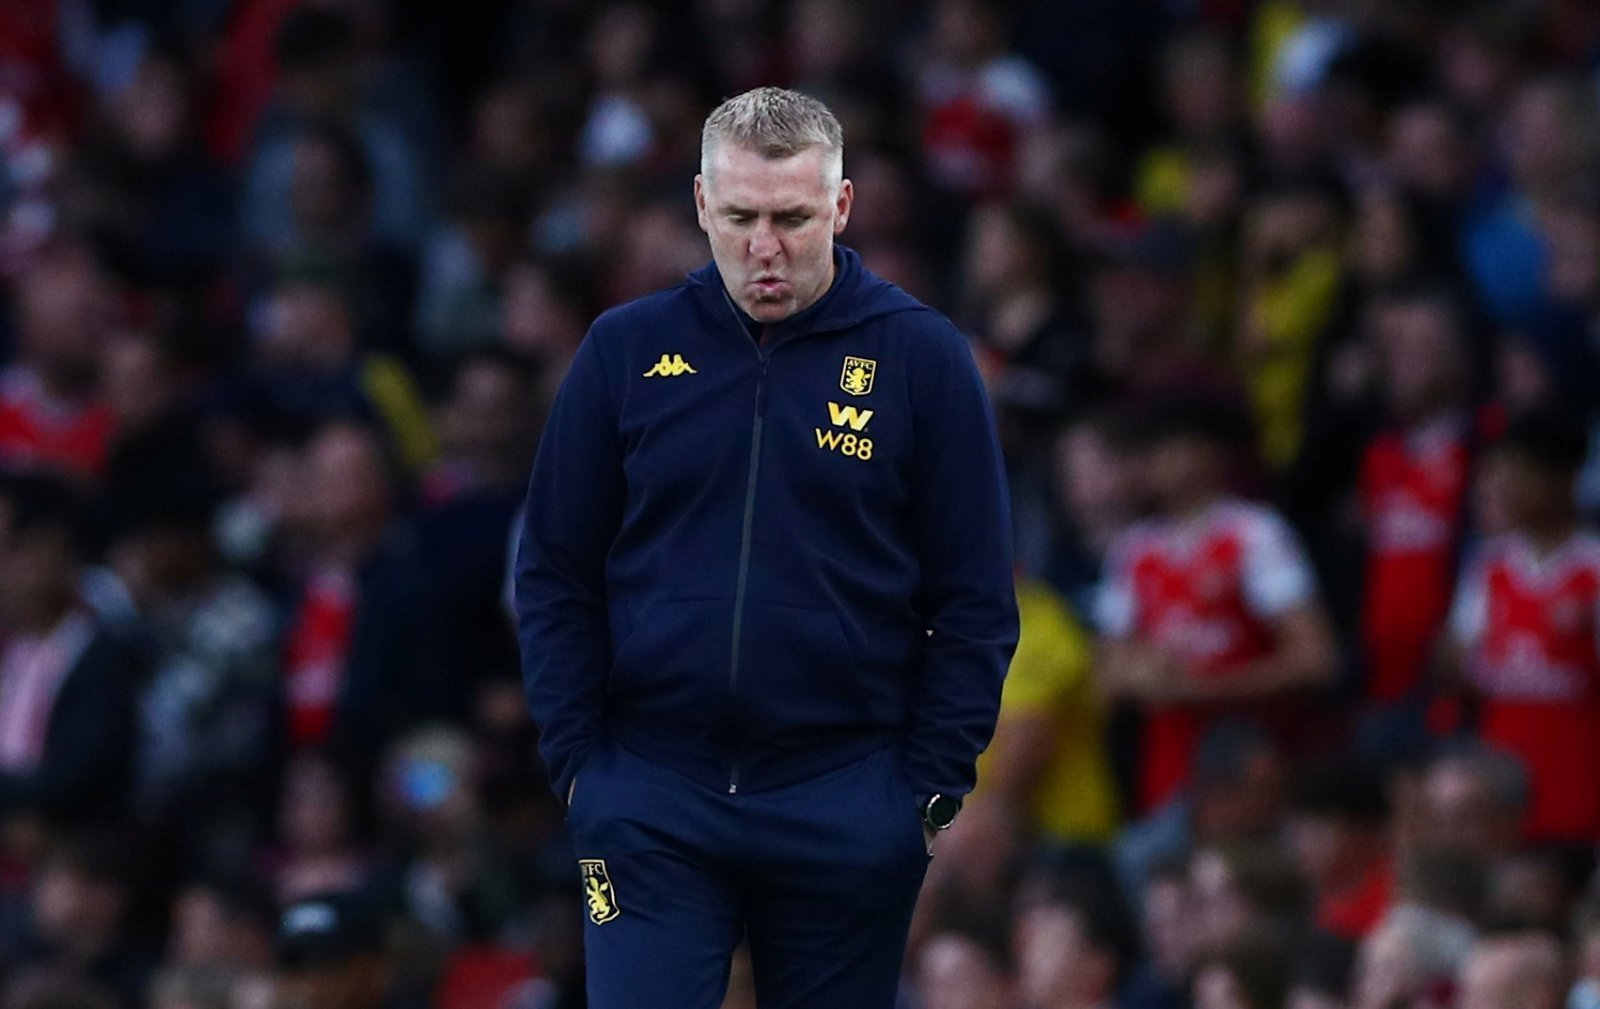 Aston Villa: Fans furious over call for Dean Smith to resign as manager